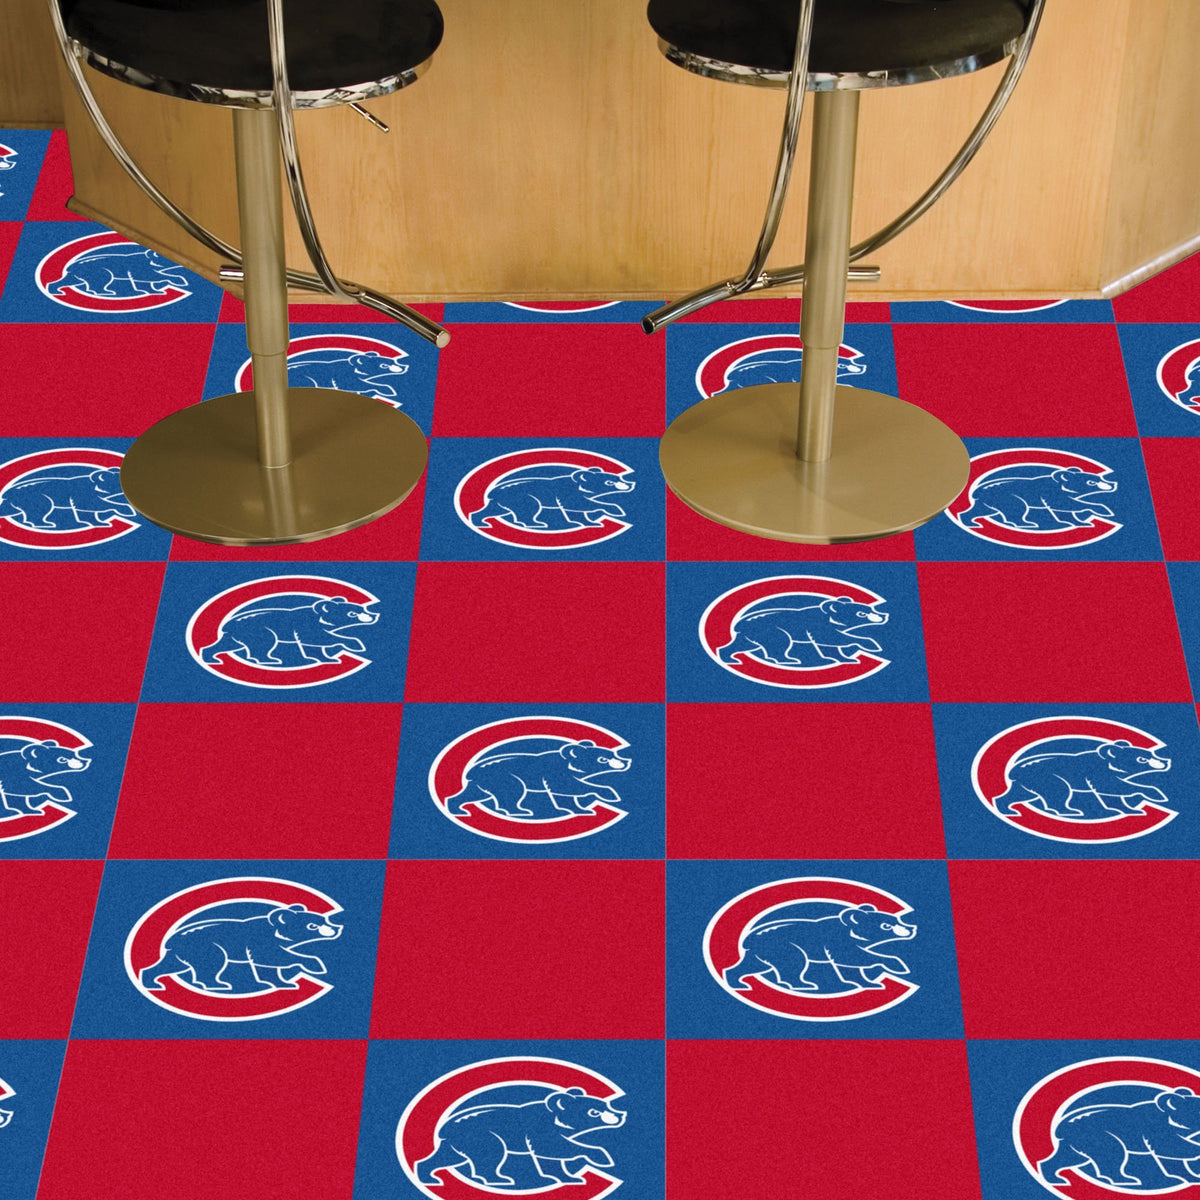 MLB - Team Carpet Tiles MLB Mats, Carpet Tile Flooring, Team Carpet Tiles, MLB, Home Fan Mats Chicago Cubs 2